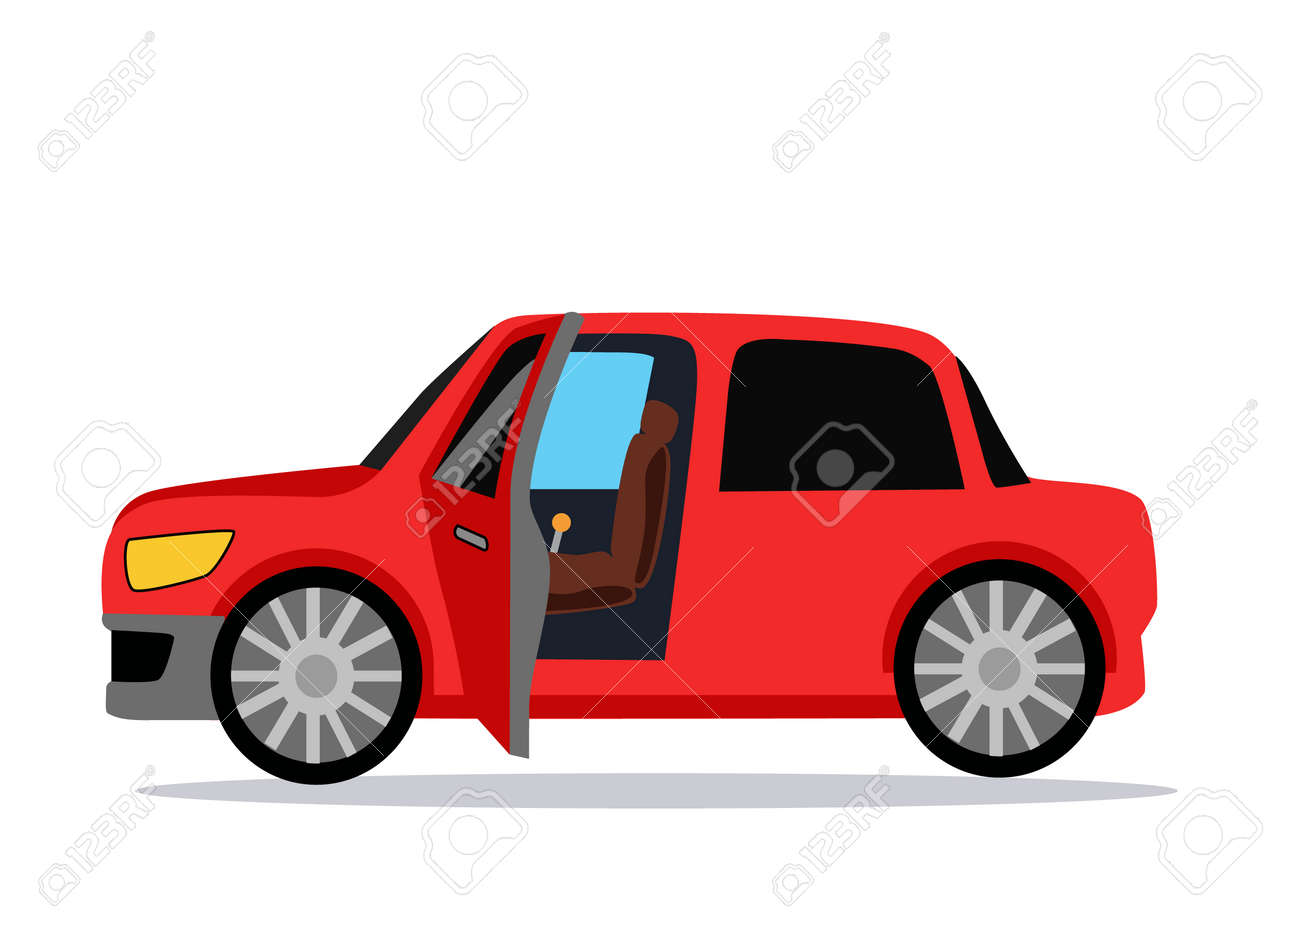 Car Icon Car Icon Object Car Logo Car Icon Giraphic Red Car